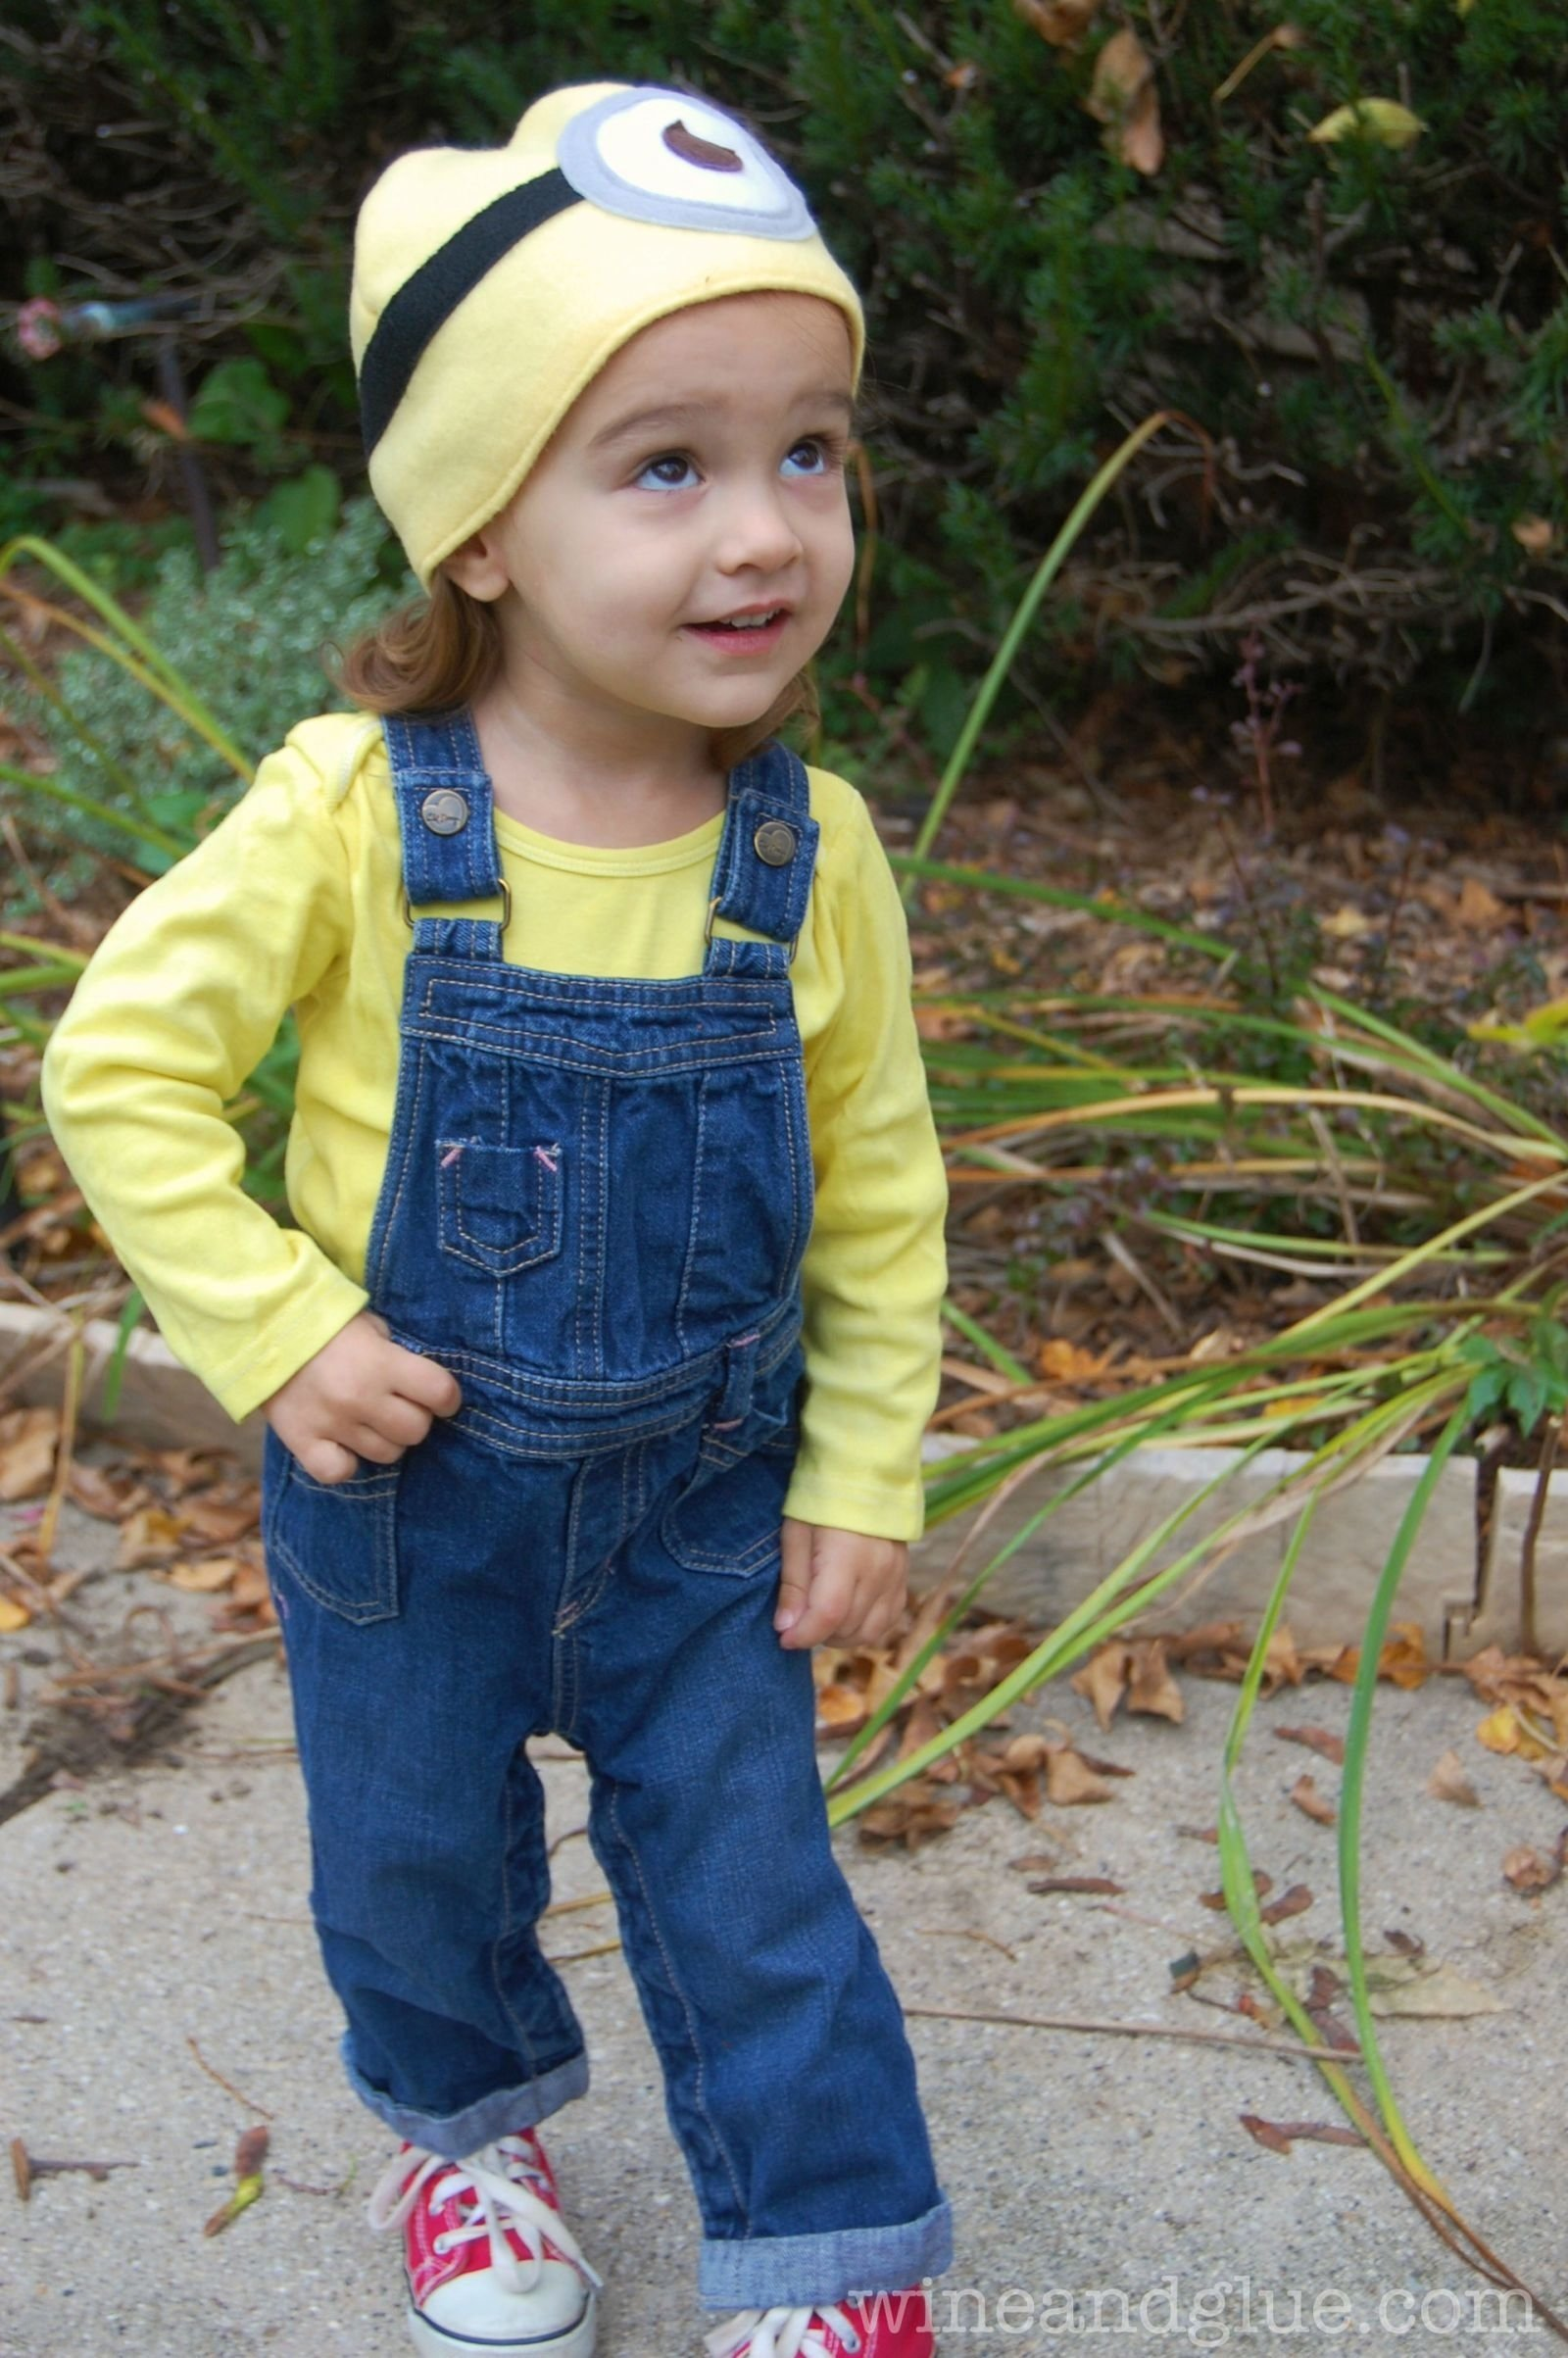 10 Most Popular Homemade Toddler Halloween Costume Ideas 10 simple and simply adorable diy kids halloween costumes 2021